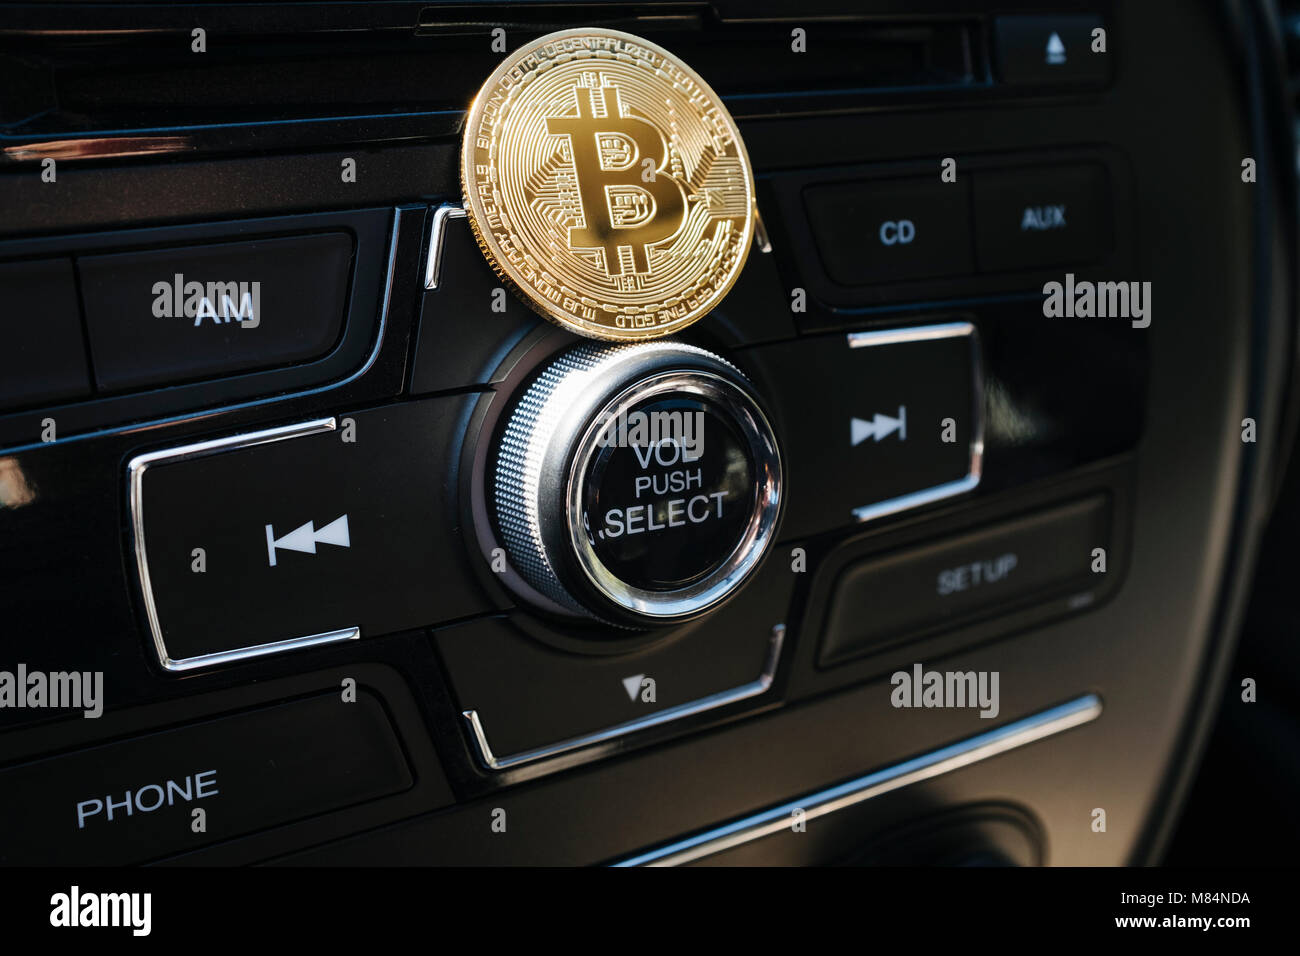 Bitcoin Gold Coin On Cars Dashboard Car Radio